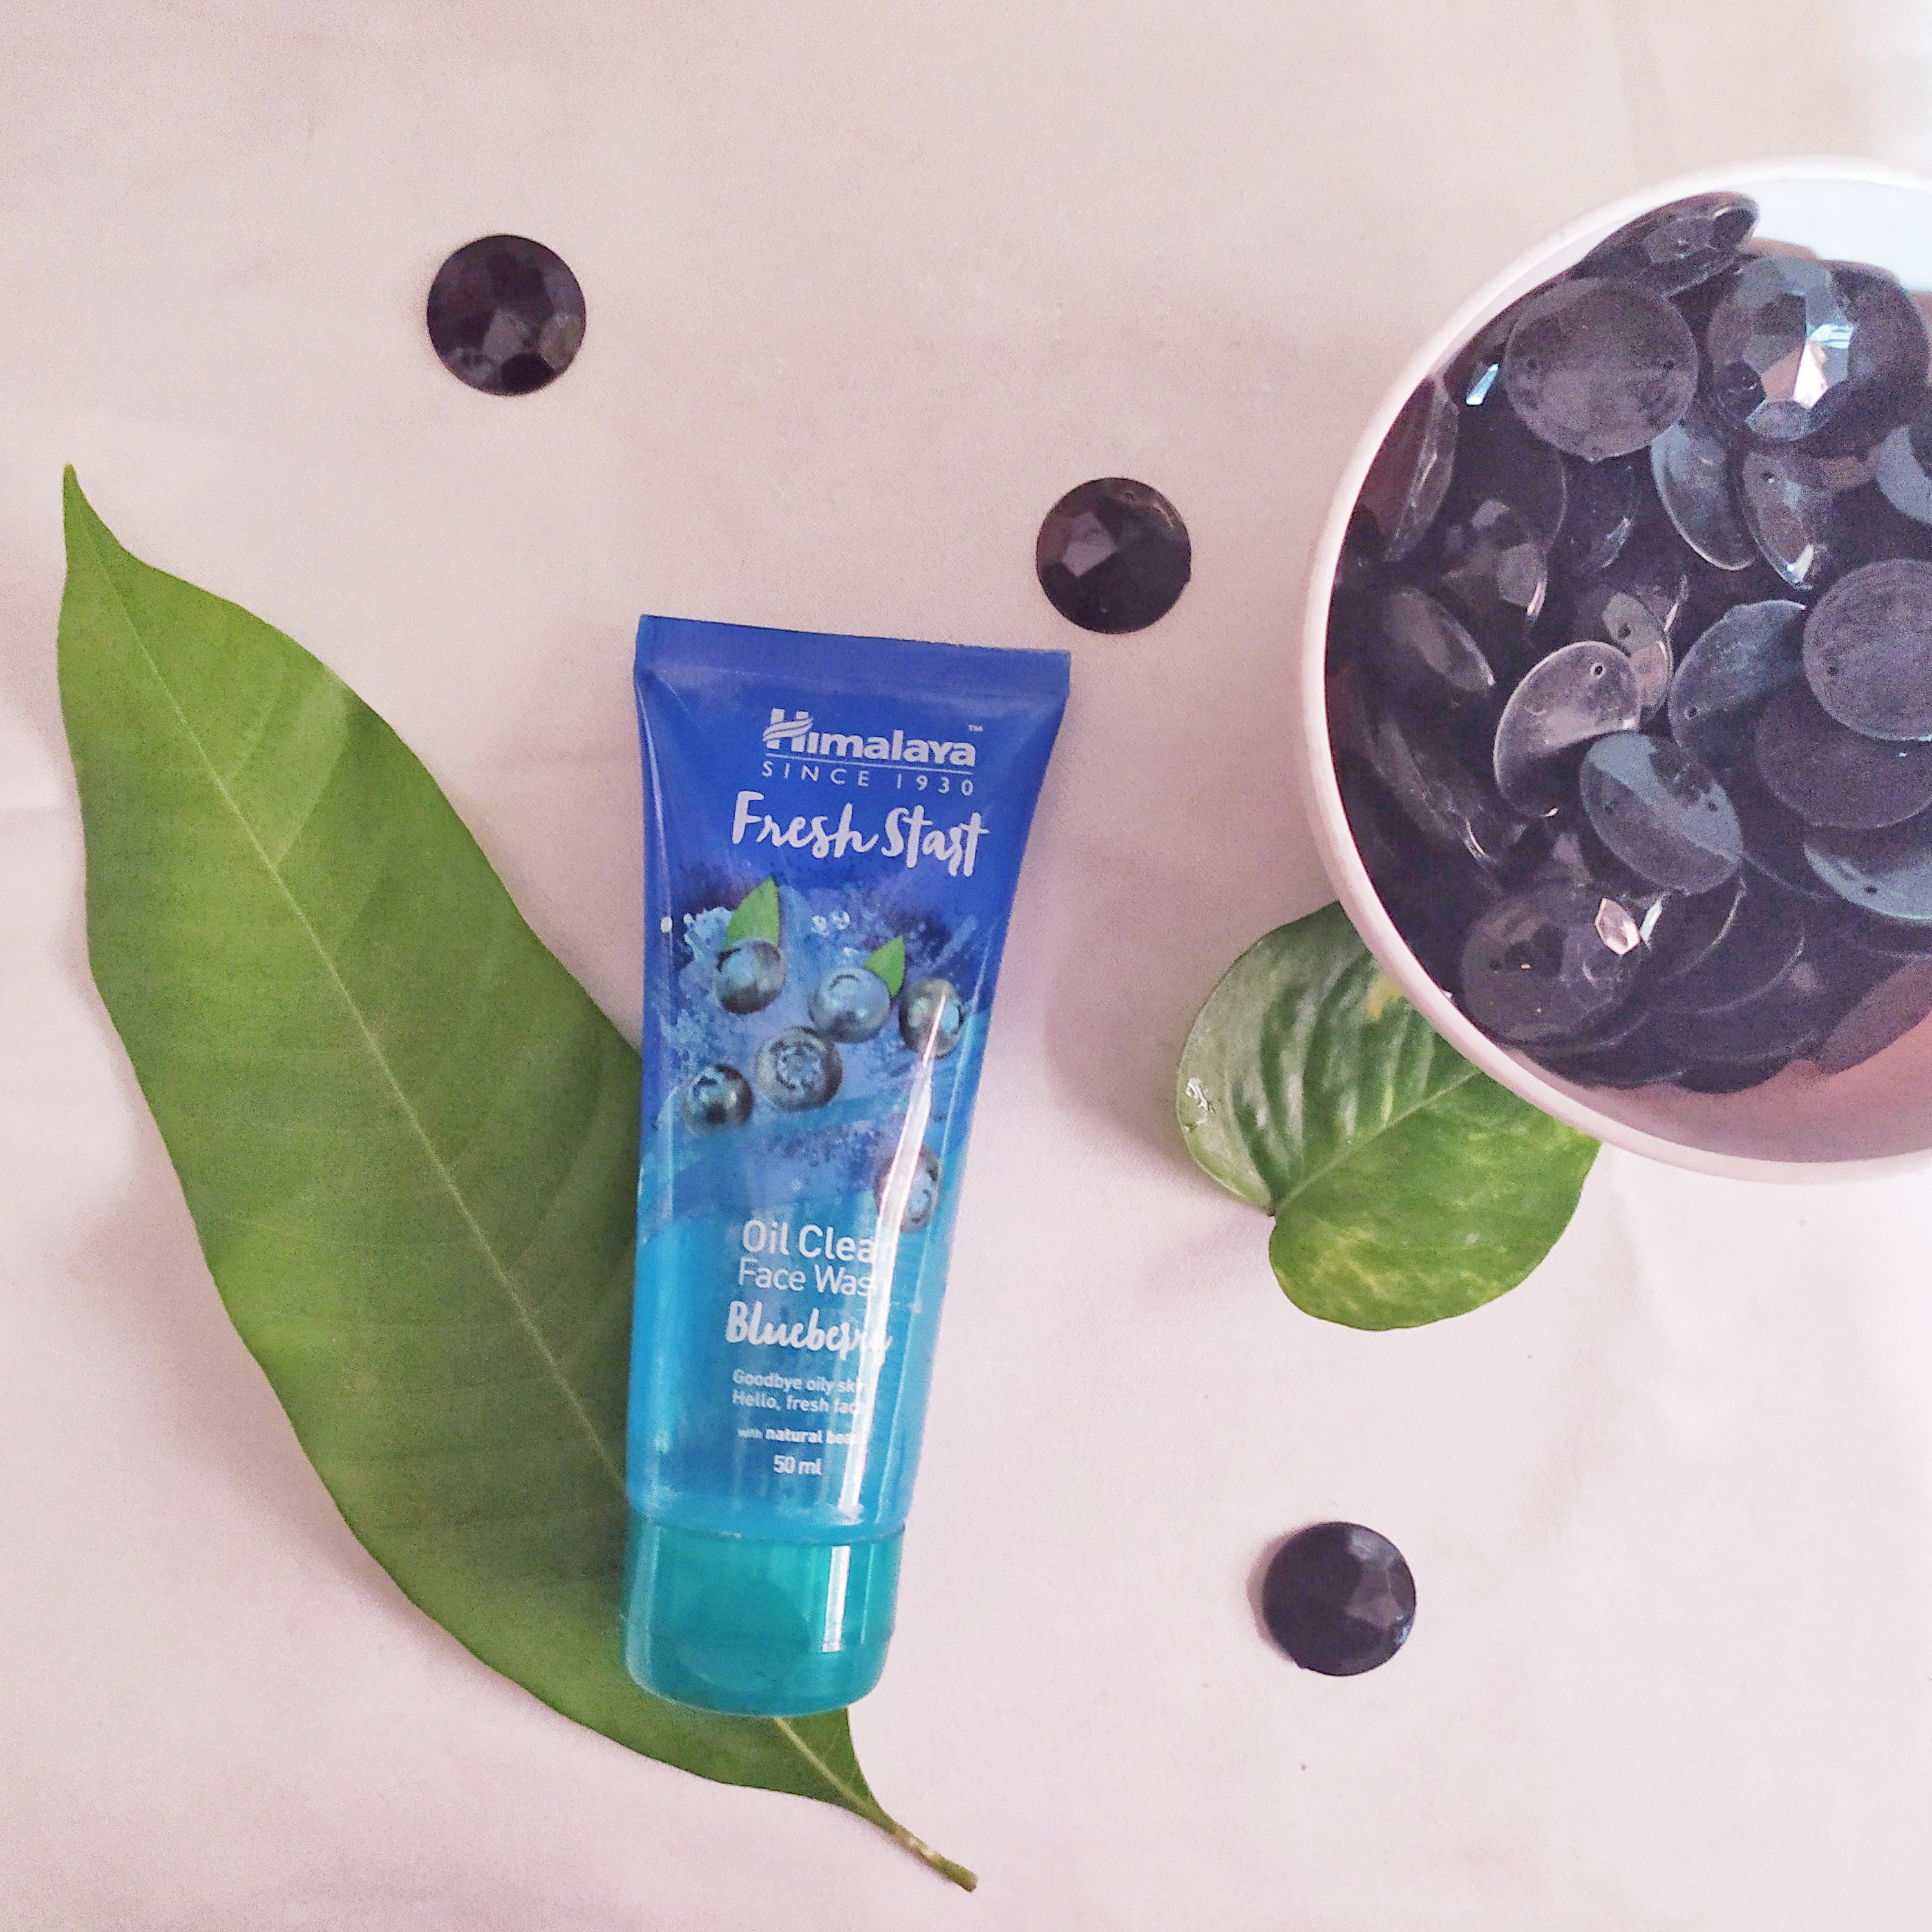 Himalaya Herbals Fresh Start Oil Clear Blueberry Face Wash-Current favourite-By hasmina_laskar_